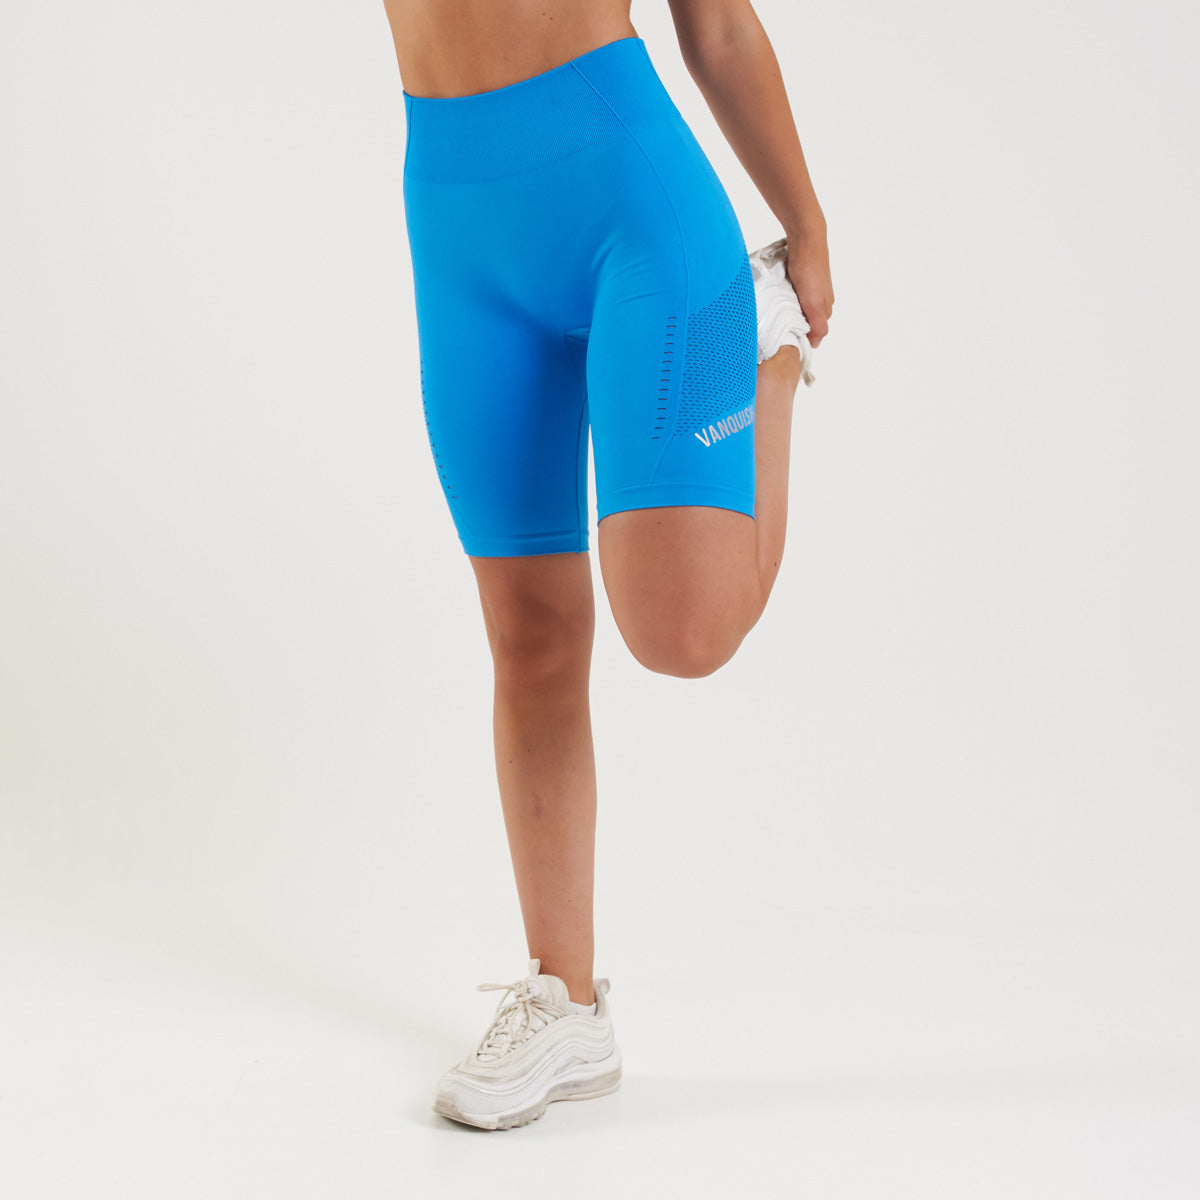 Vanquish Zeal Women's Blue Seamless Cycling Shorts